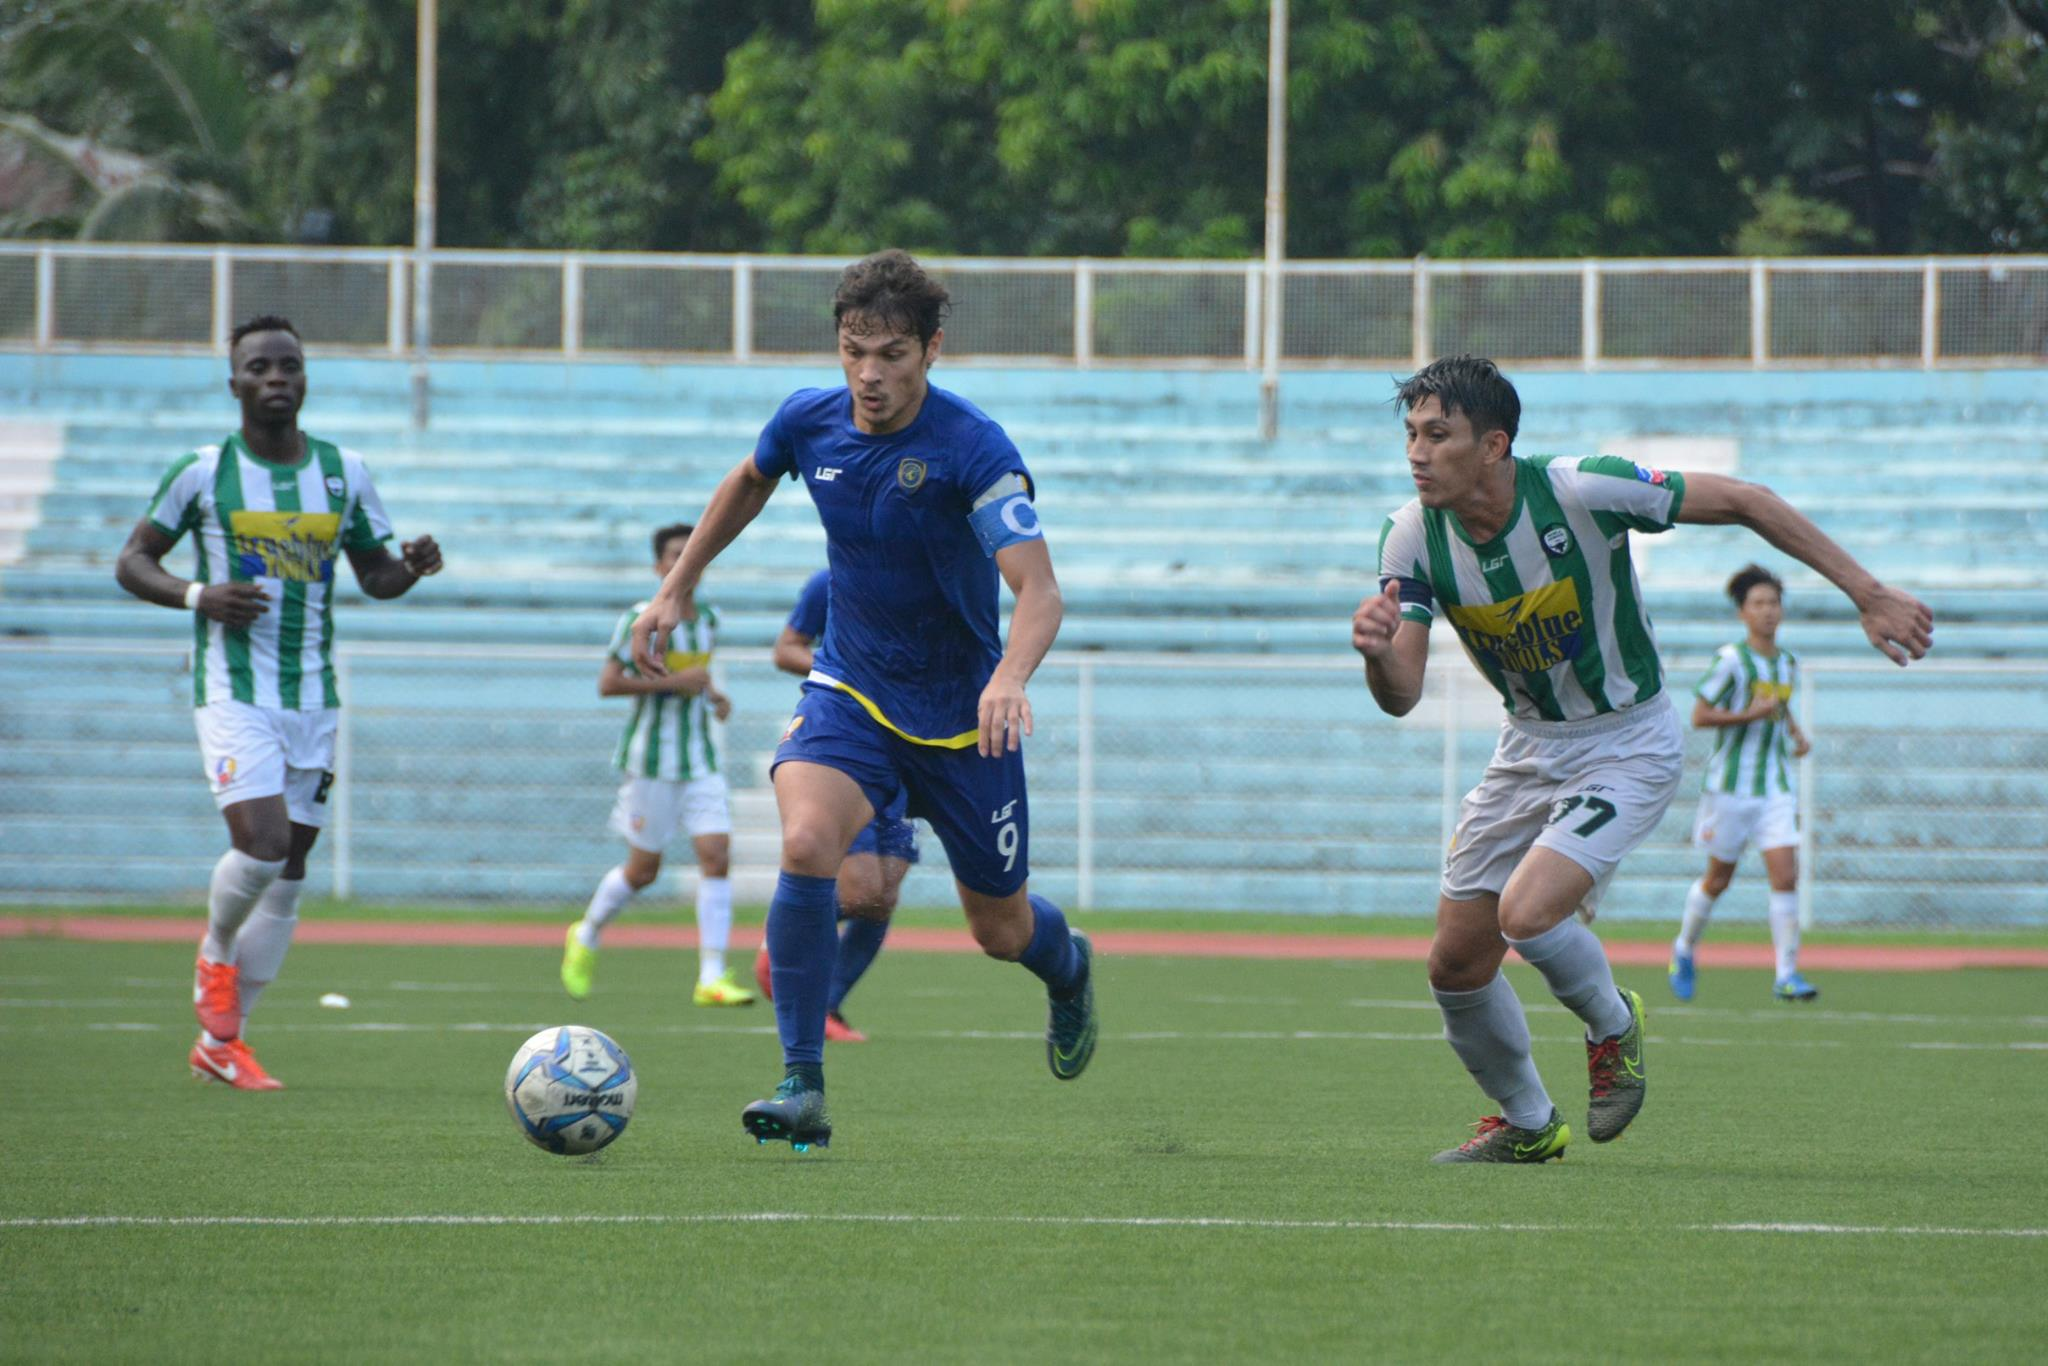 Tiebreaker Times Global, Ceres-La Salle rip foes ahead of Sunday's thrilling clash Football News UFL  Victorino Son Nomads SC Misagh Bahadoran Martin Steuble Leigh Manson Lee Jeong-Woo Hikaru Minegishi Green Archers United FC Global FC Ceres-La Salle FC Ali Go Adrian Gallardo 2016 UFL League